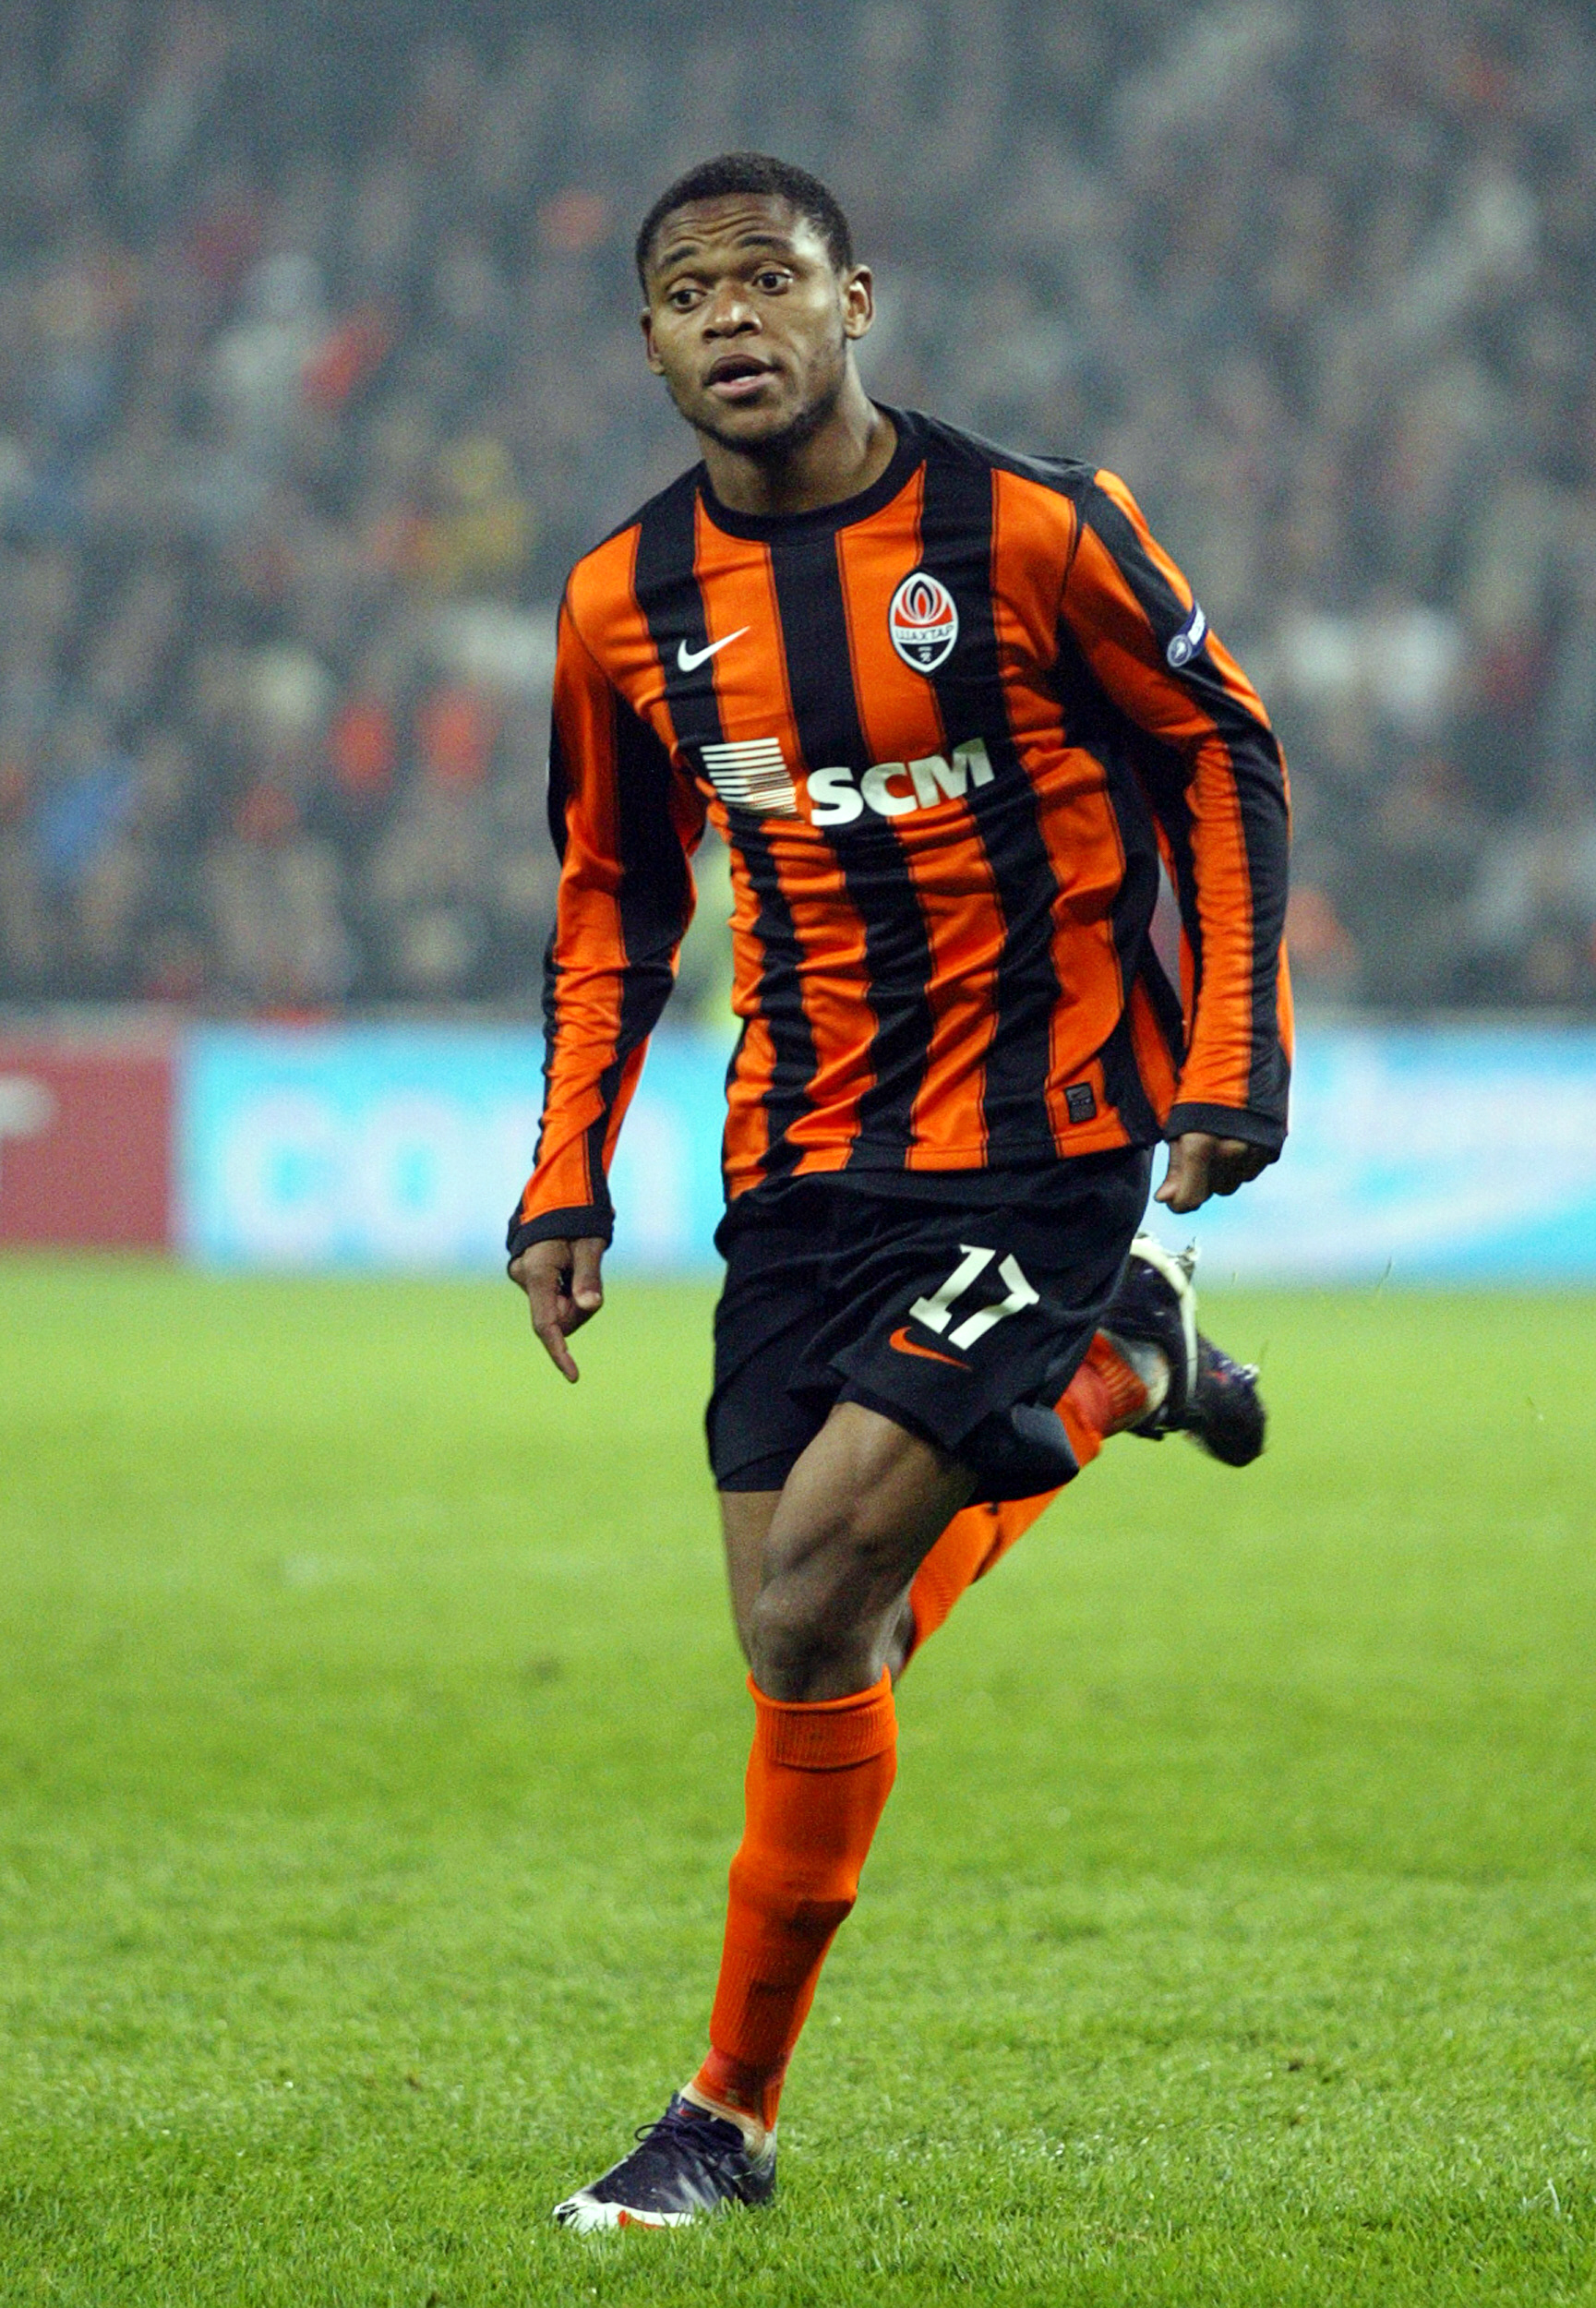 DONETSK, UKRAINE - OCTOBER 18:  Luiz Adriano of FC Shakhtar Donetsk during the Ukrainian League match between FC Shakhtar Donetsk and FC Karpaty Lviv held on October 18, 2009 at the Donbass Arena, in Donetsk, Ukraine. (Photo by Alexander Khudoteply/EuroFo